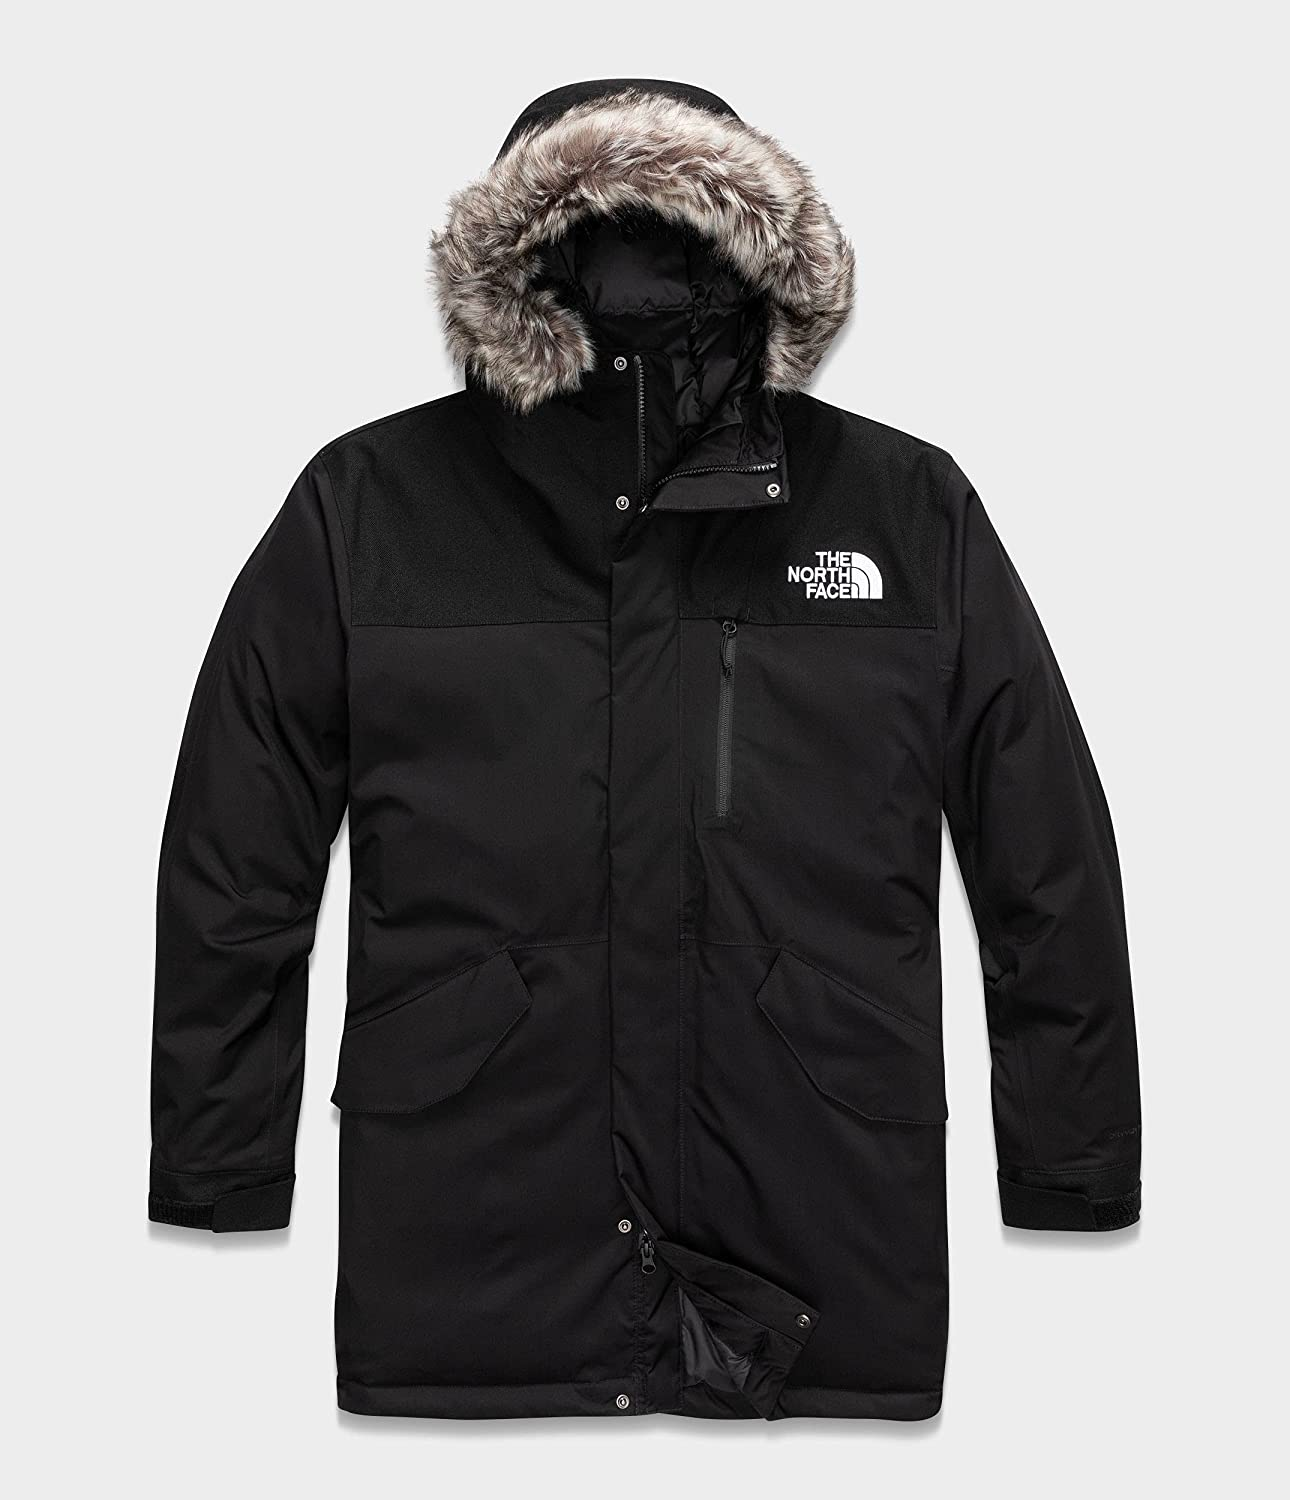 The North Face Men's Bedford Down Parka